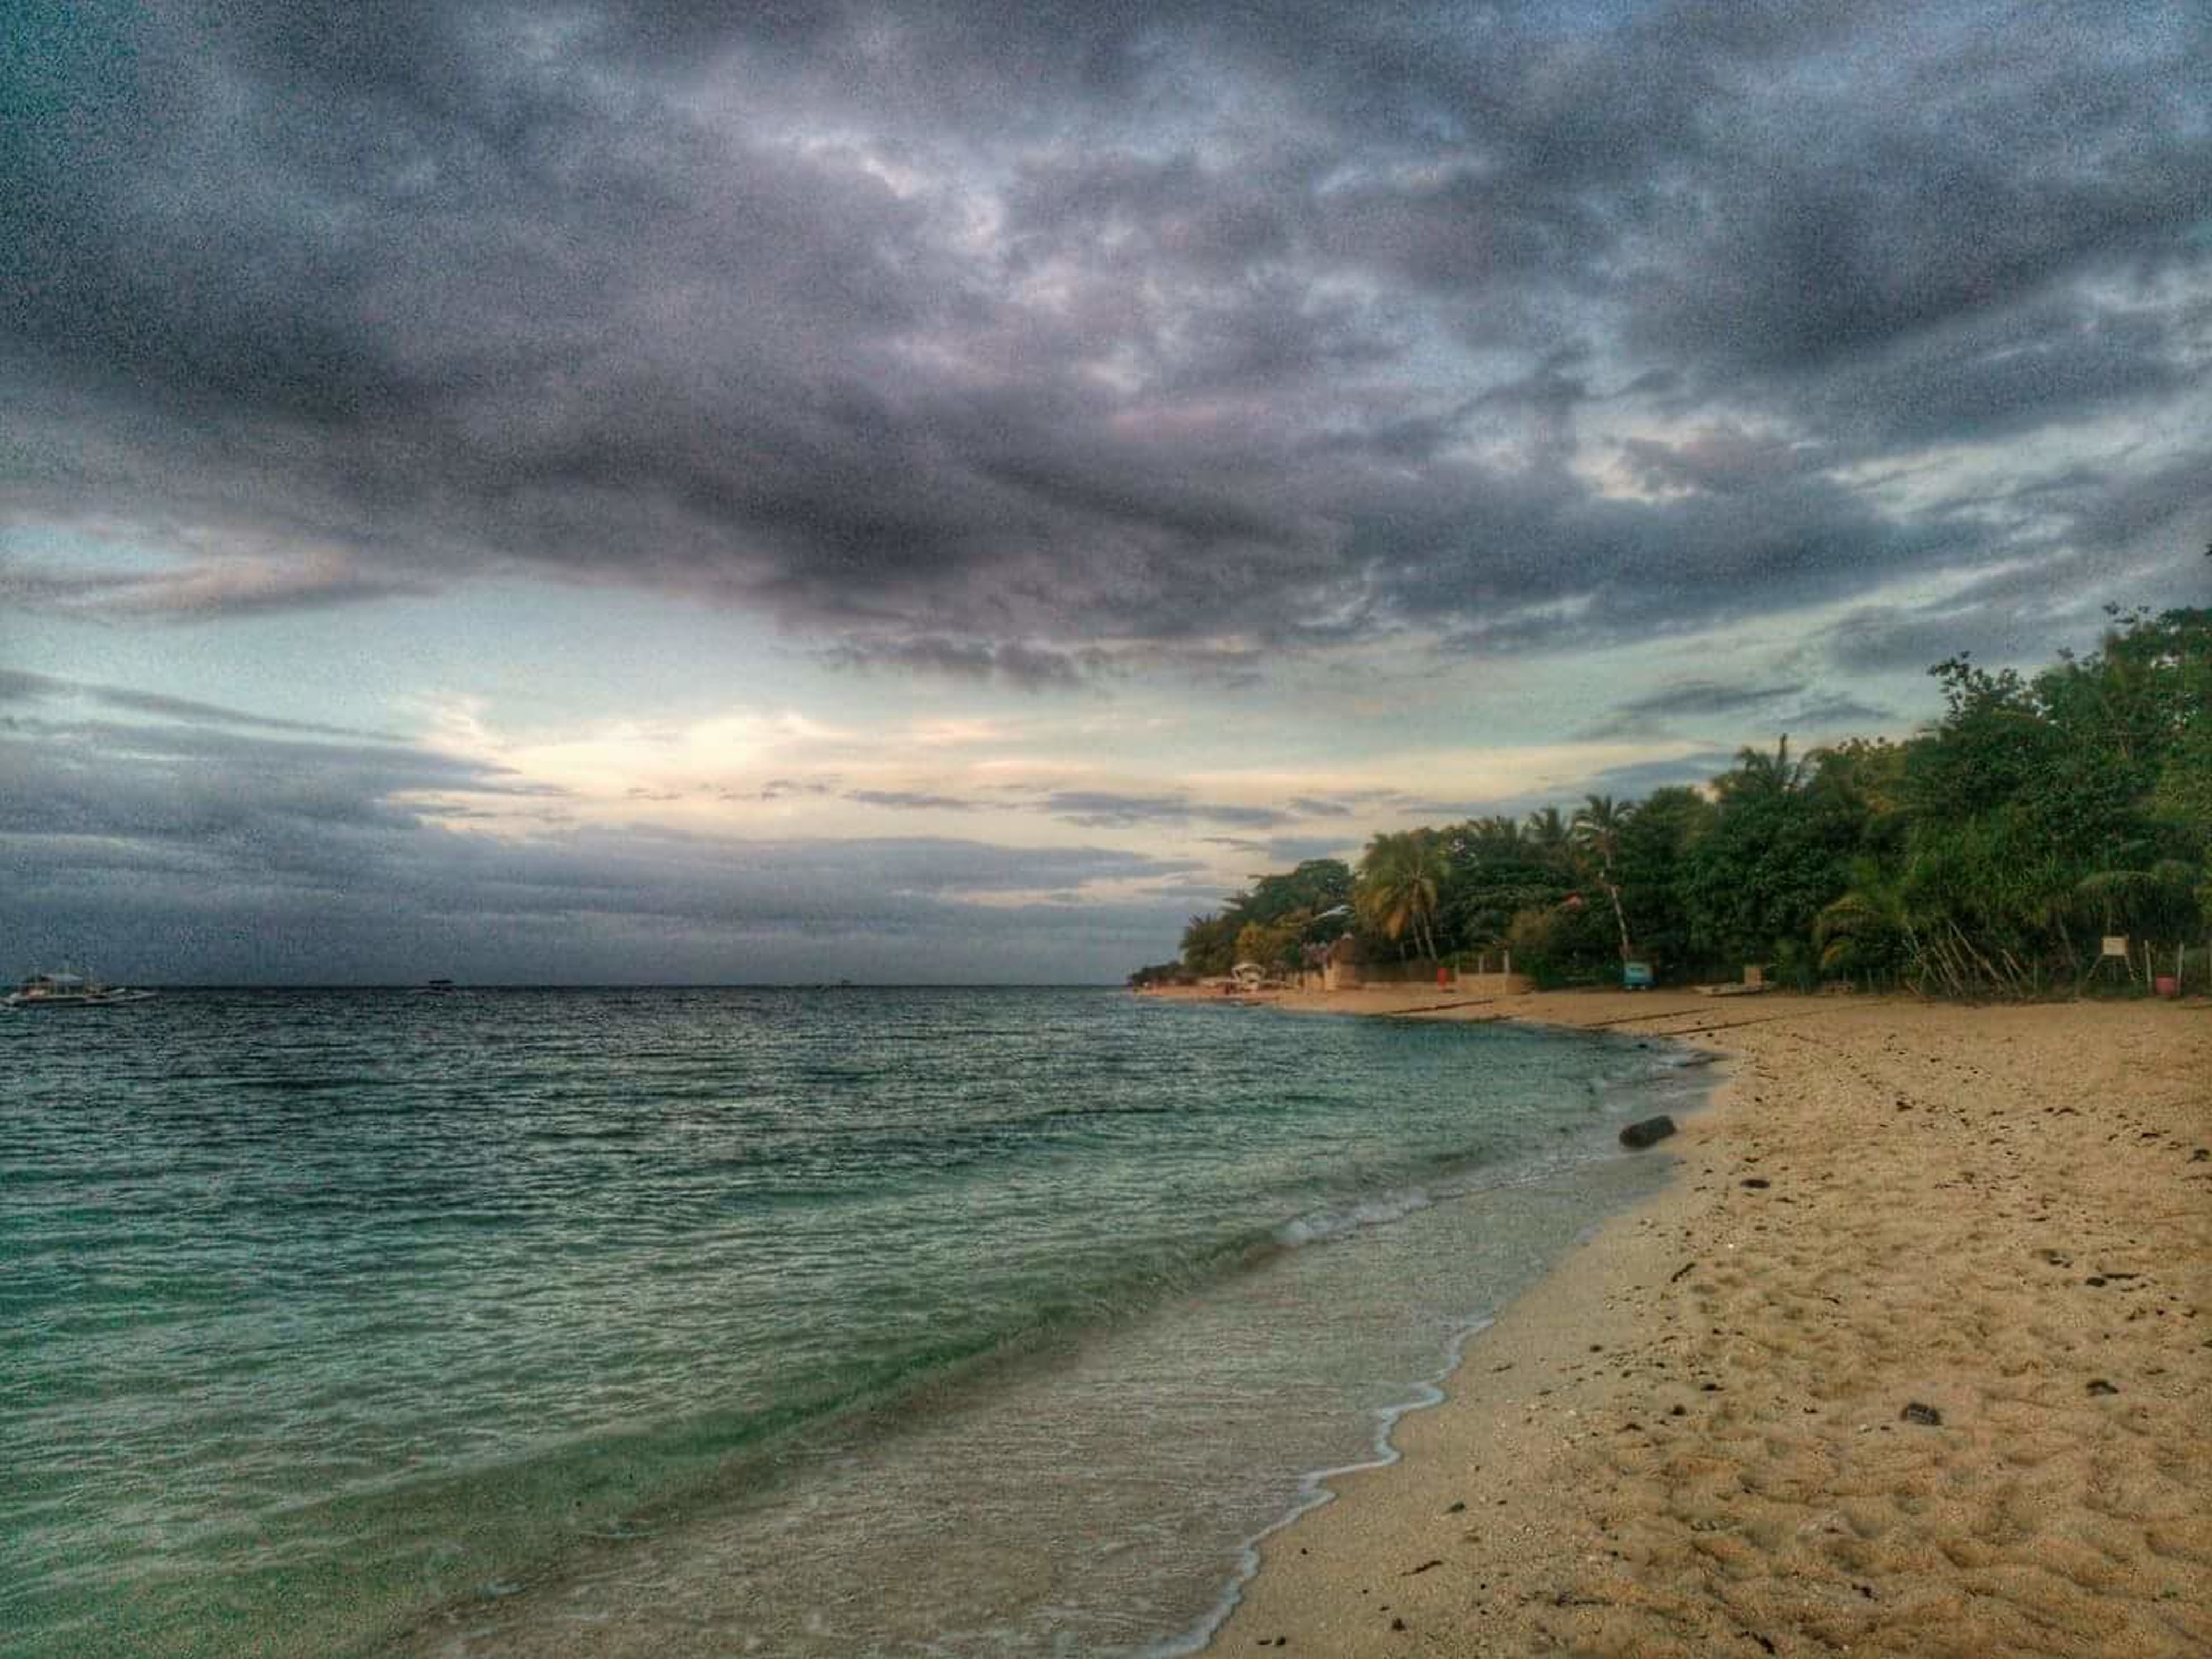 sea, cloud - sky, beach, tree, sky, beauty in nature, nature, scenics, outdoors, horizon over water, tranquil scene, sand, dramatic sky, tranquility, no people, water, landscape, storm cloud, day